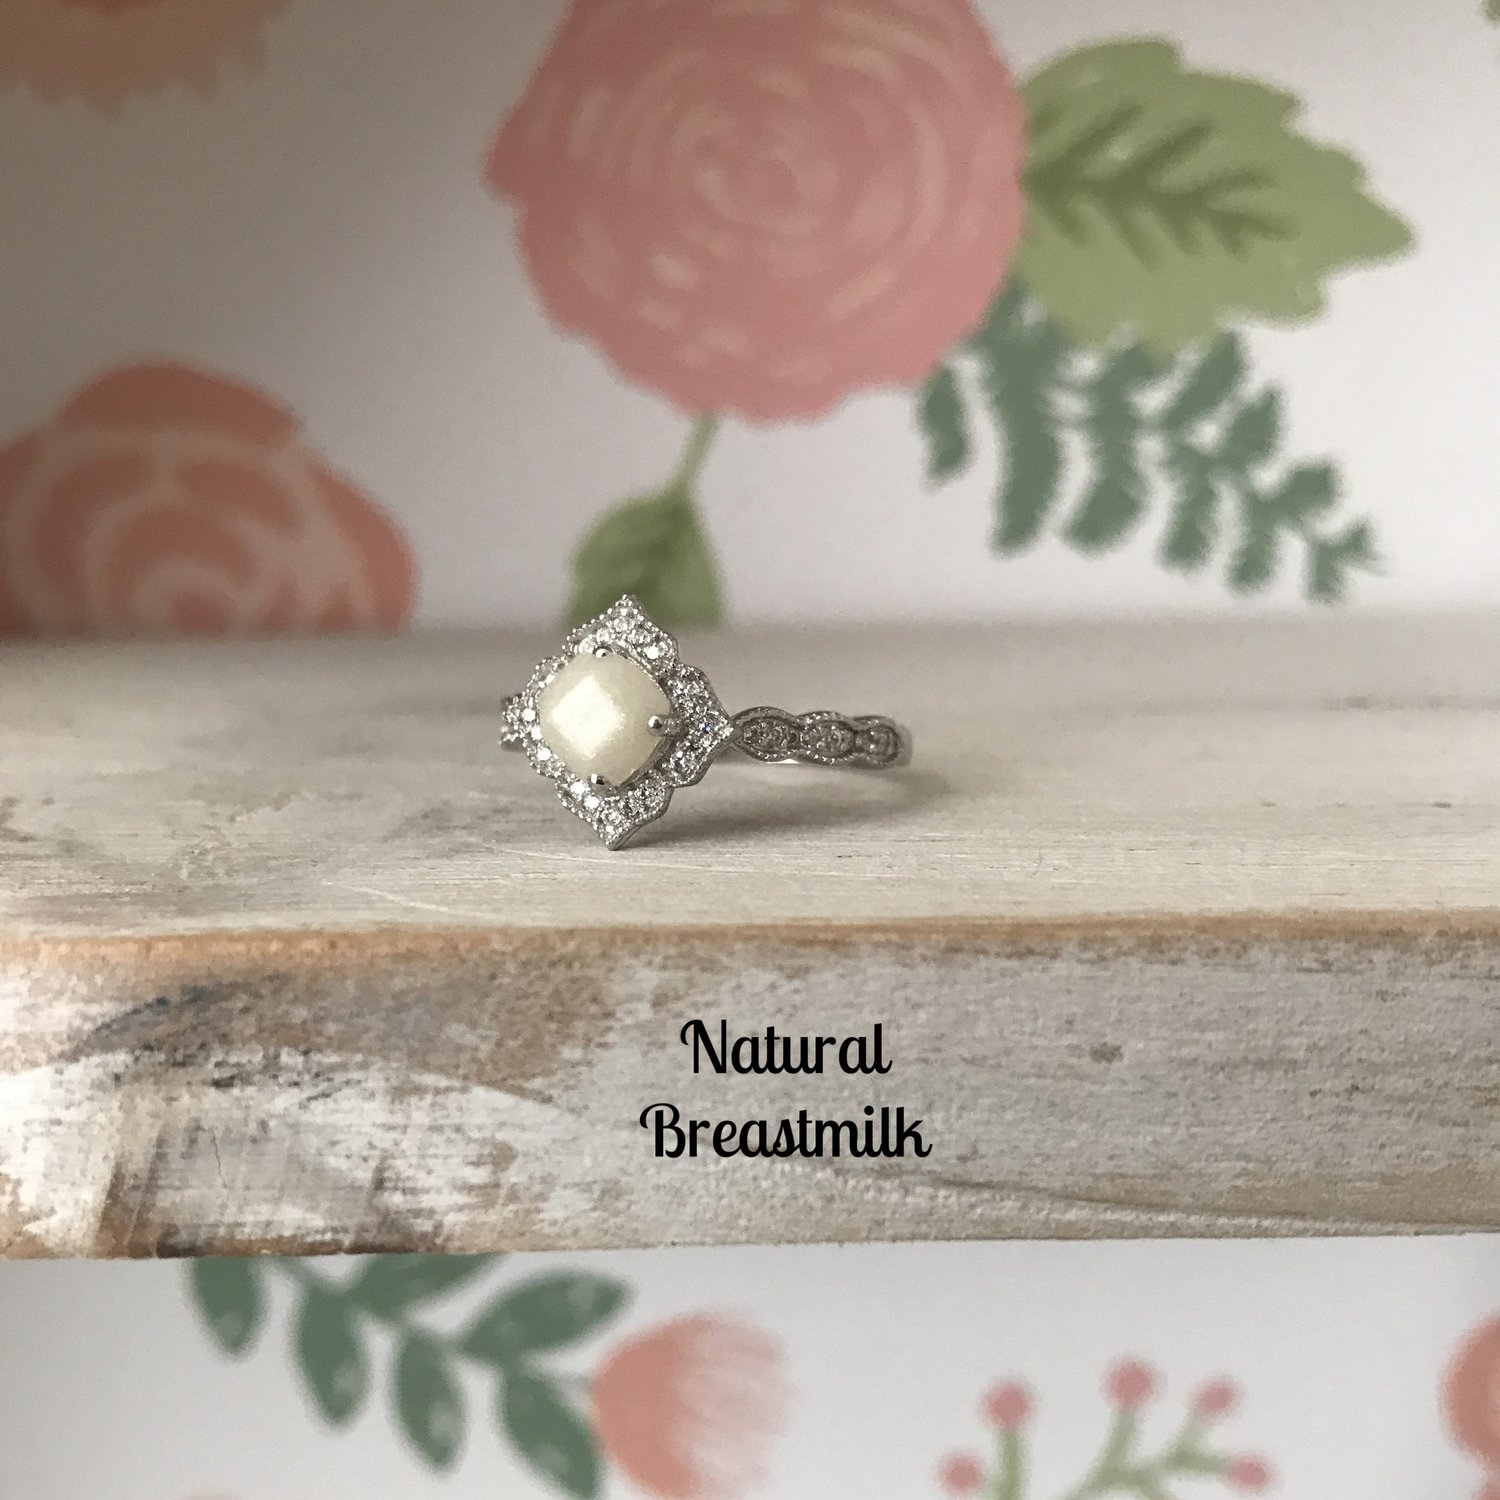 612cc1451b753 5 Gorgeous Breastmilk Jewelry Companies to Commemorate Your ...